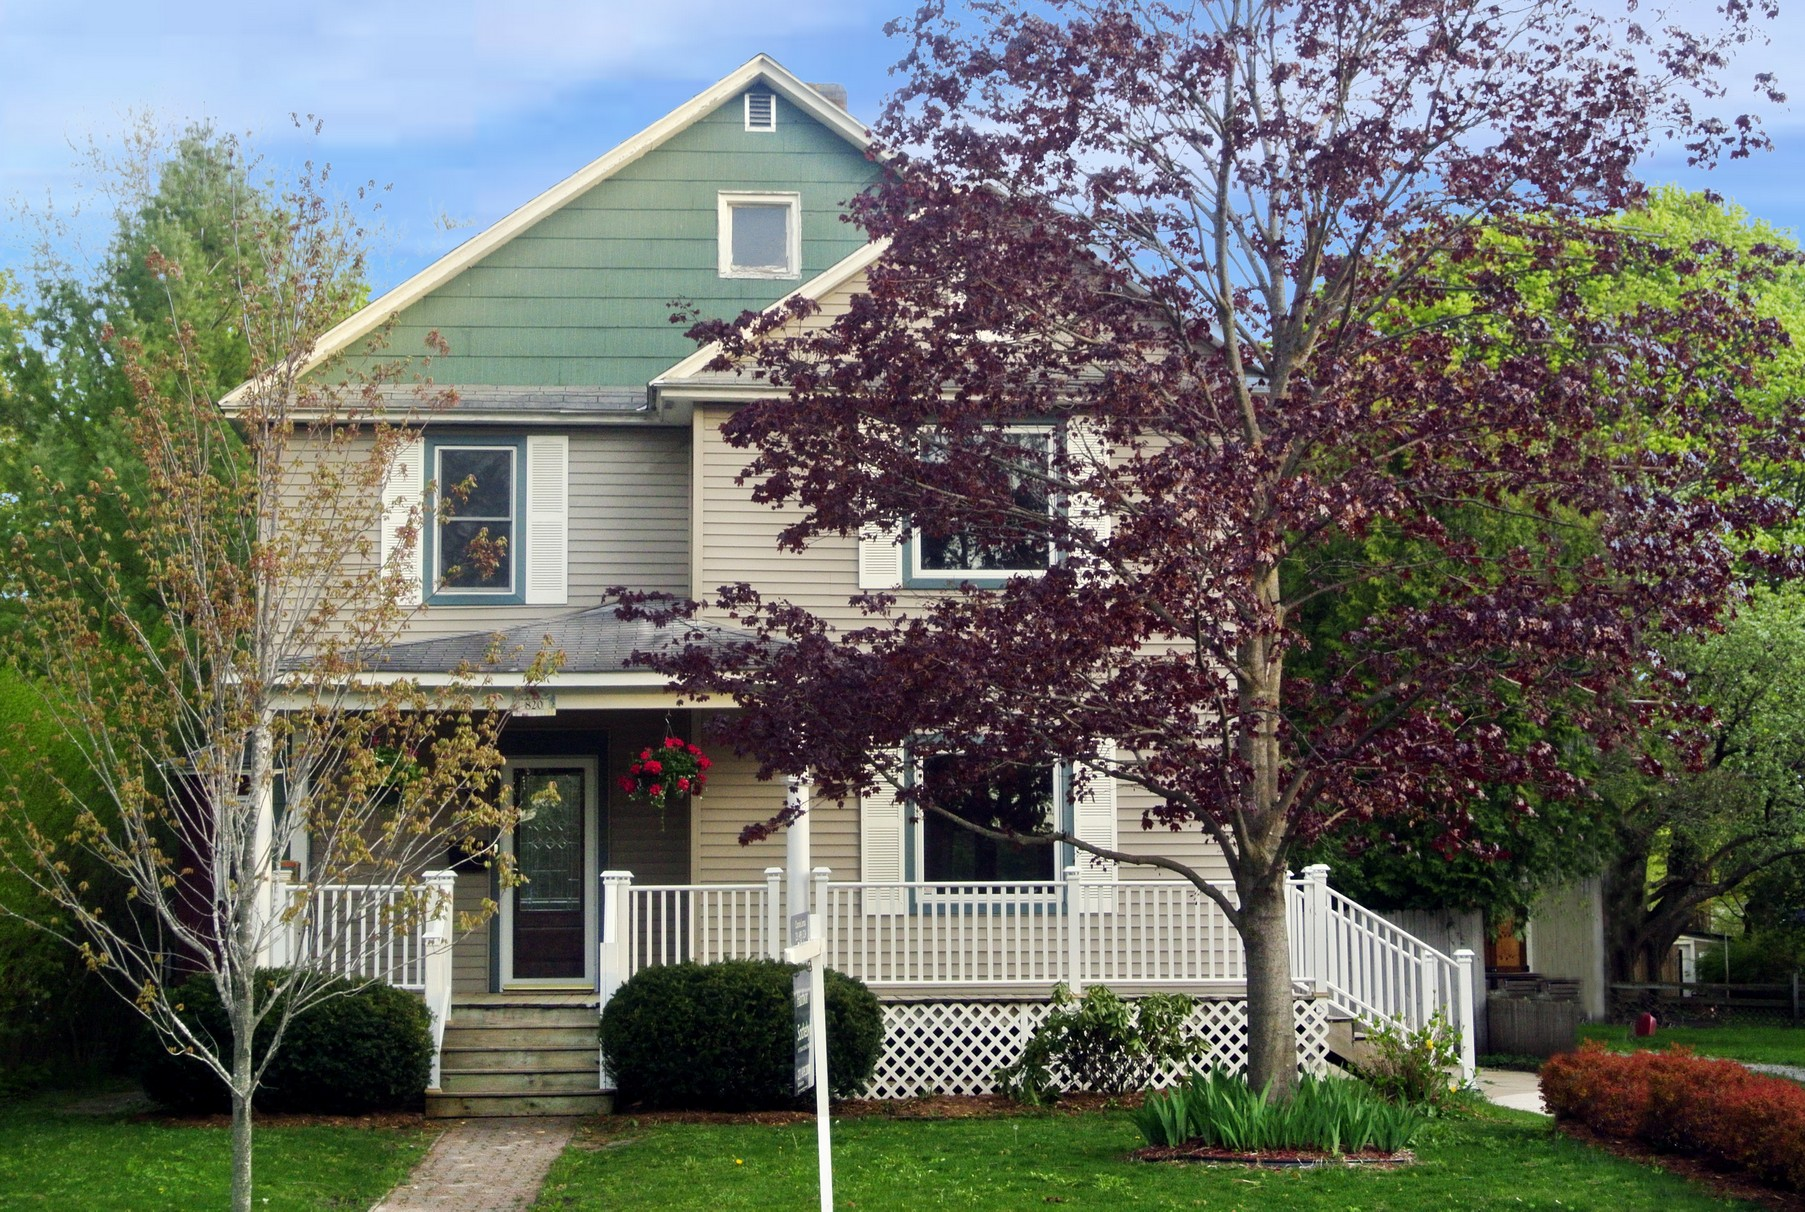 Single Family Home for Sale at 820 Michigan Street Petoskey, Michigan, 49770 United States